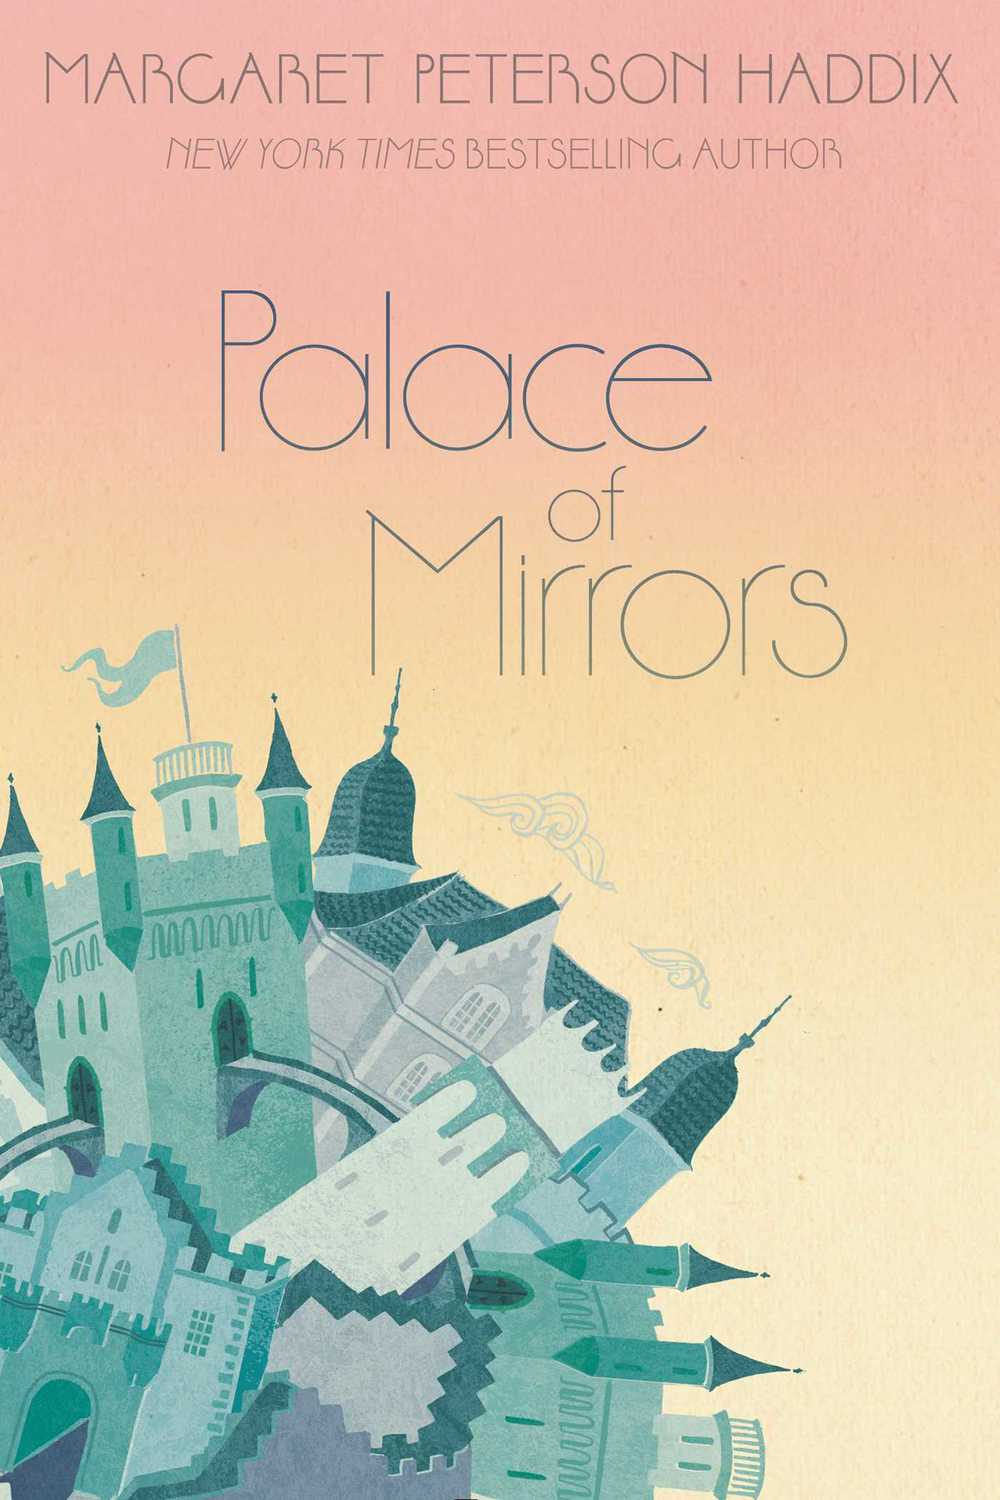 haddix-palace of mirrors-reprint.jpg